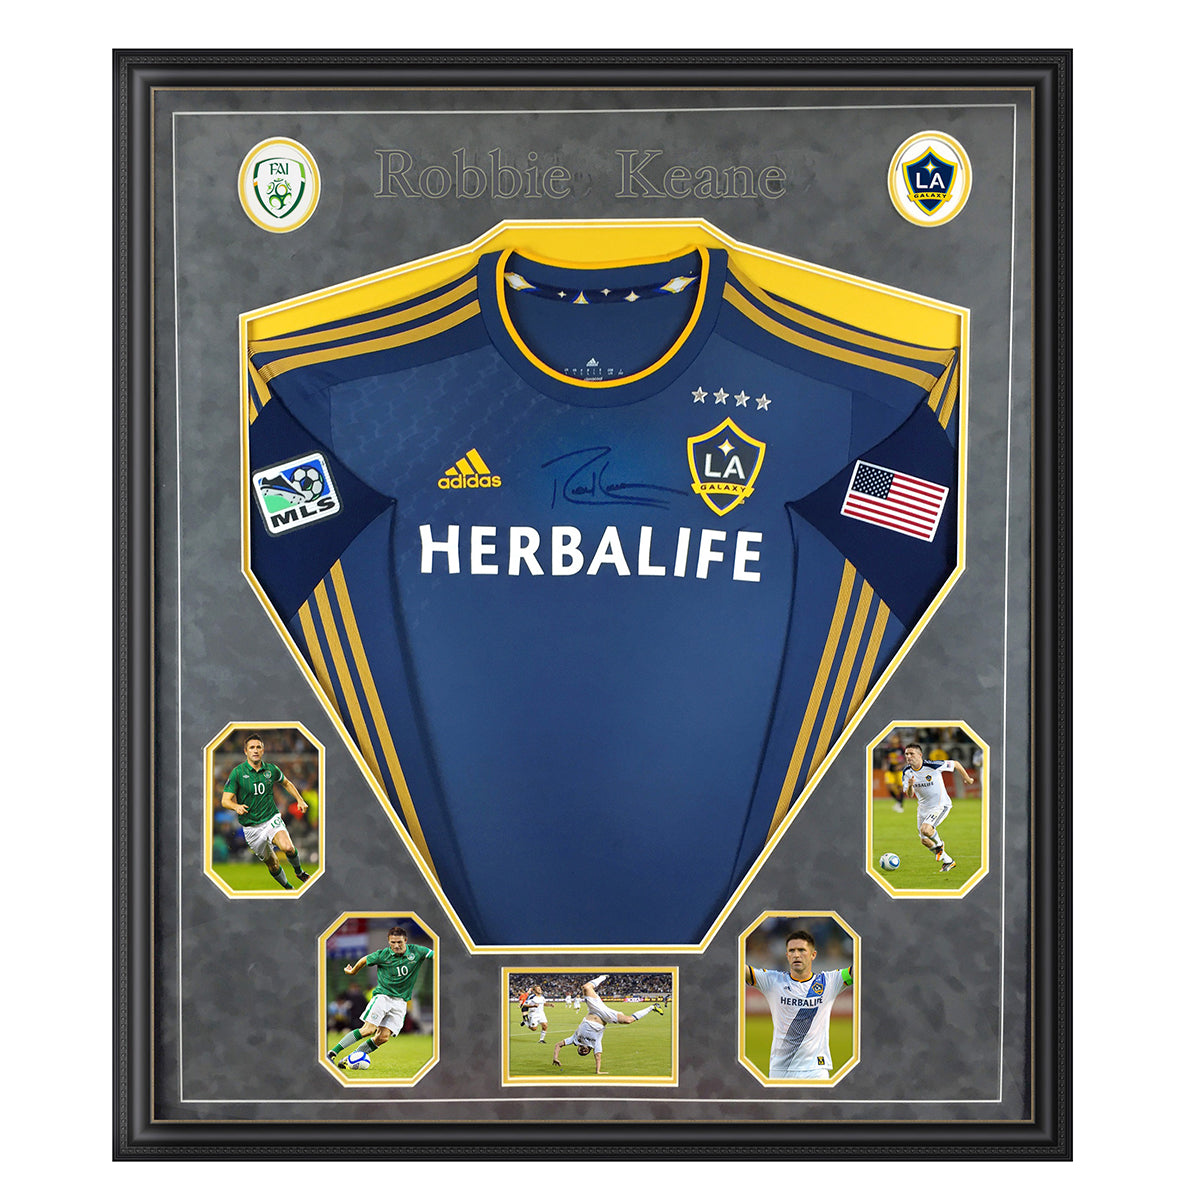 LA Galaxy jersey frame - with logos, etc in suedette grey